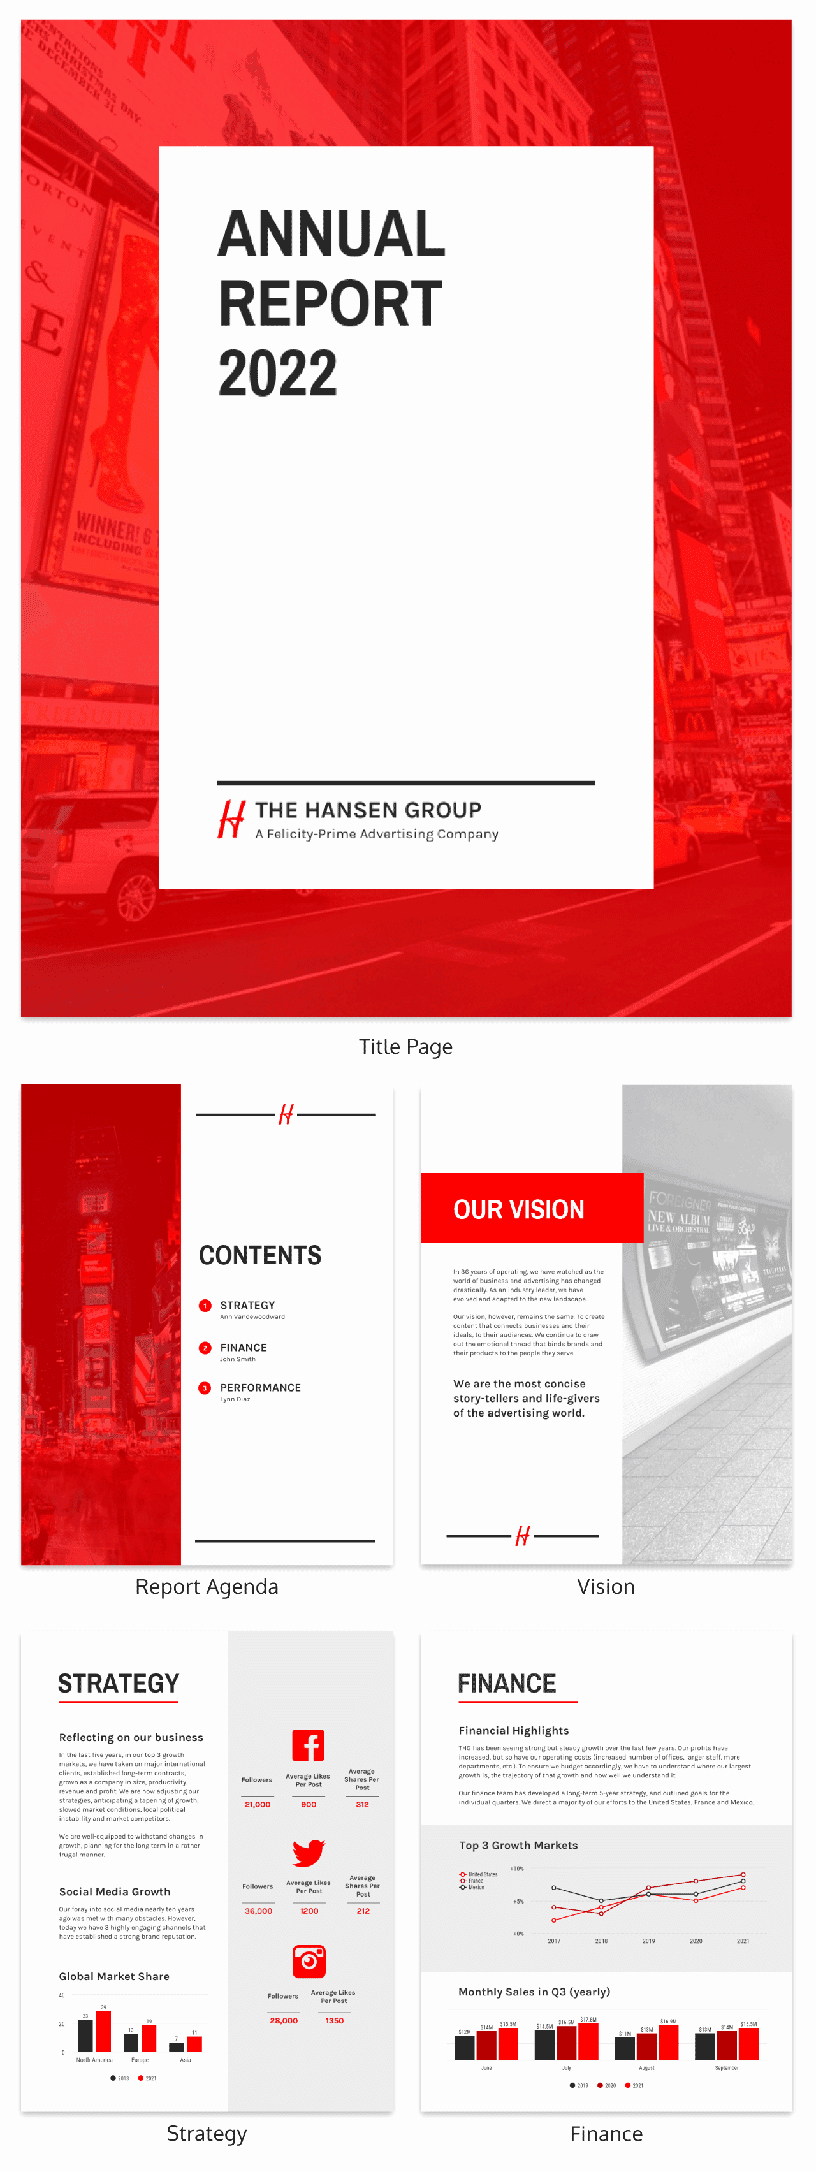 Annual Financial Report Template Elegant 50 Customizable Annual Report Design Templates Examples